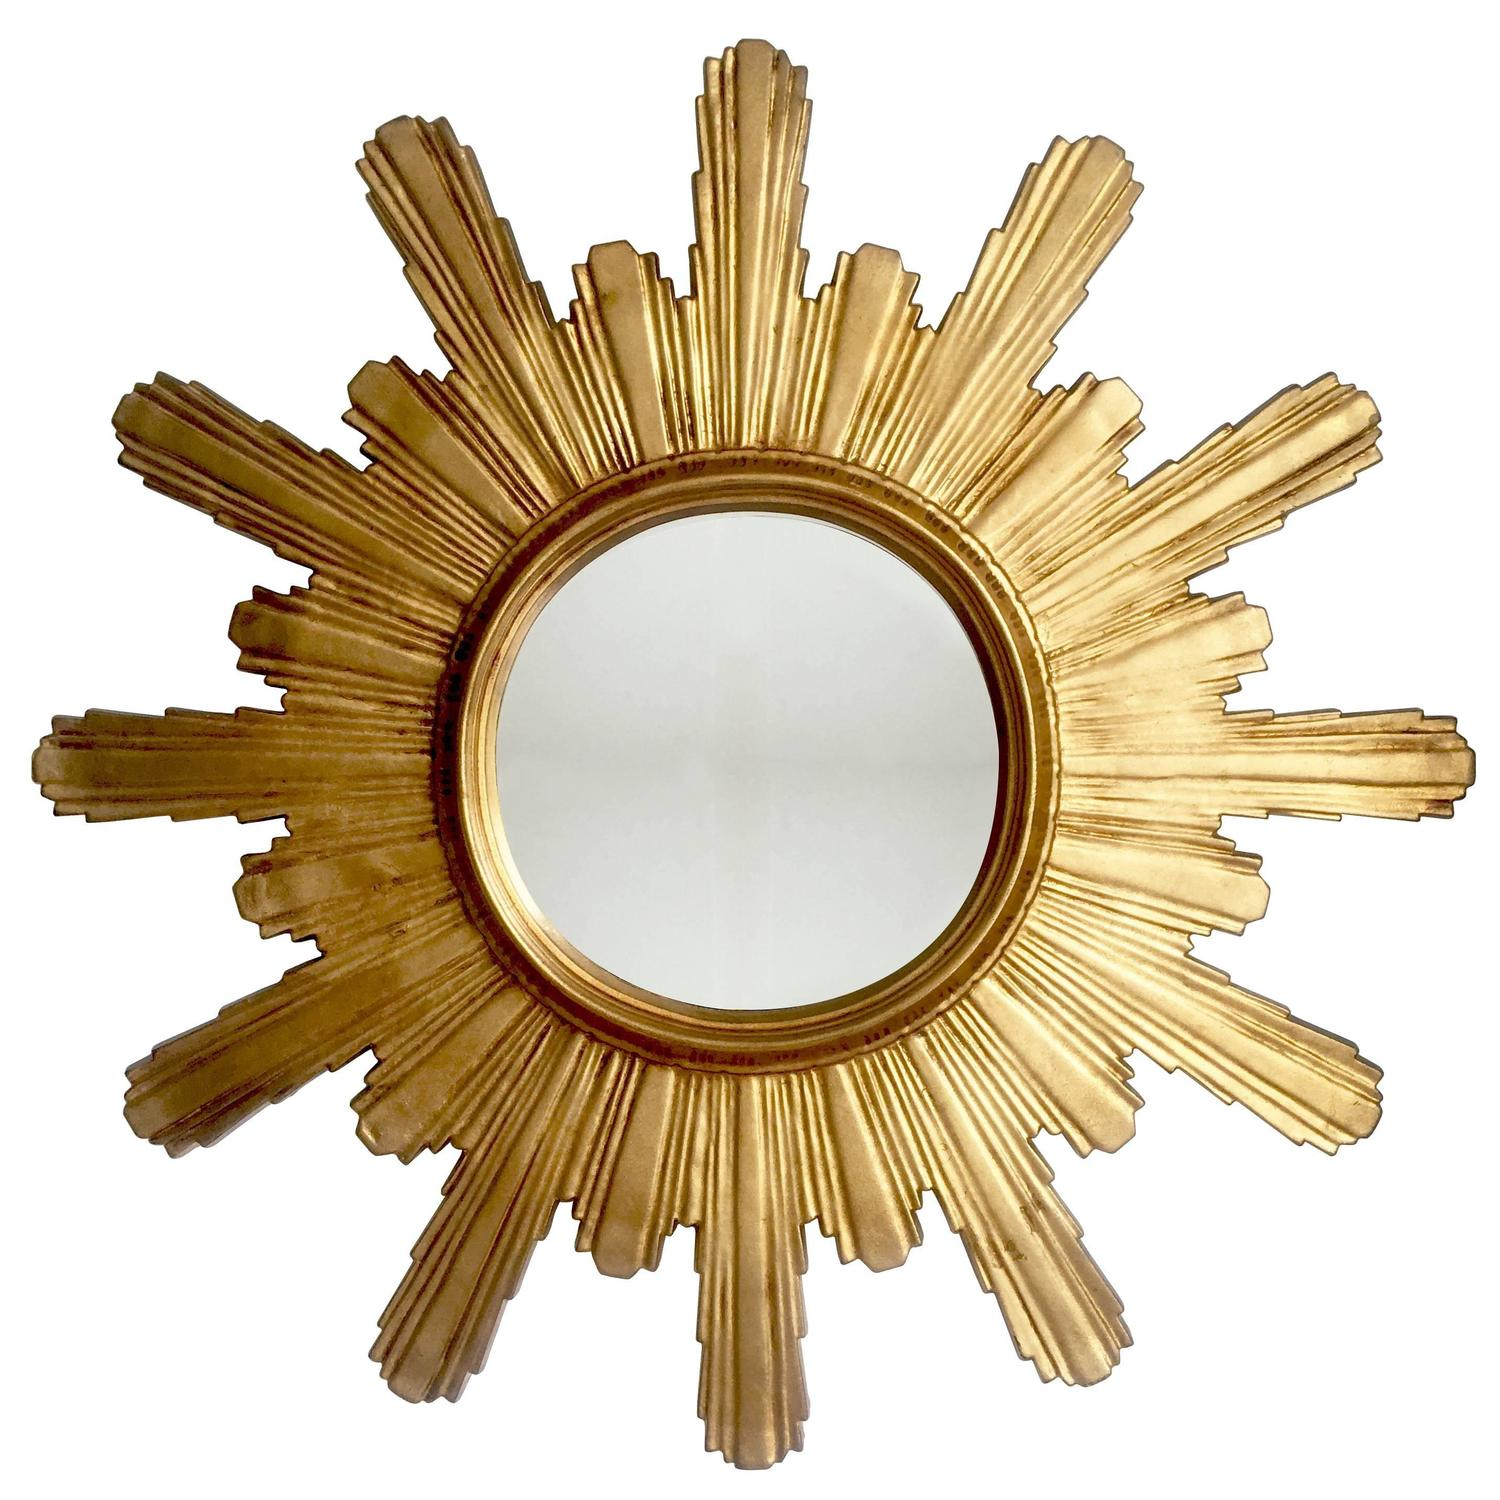 Extra large carved wooden brutalist sunburst or starburst Large wooden mirrors for sale